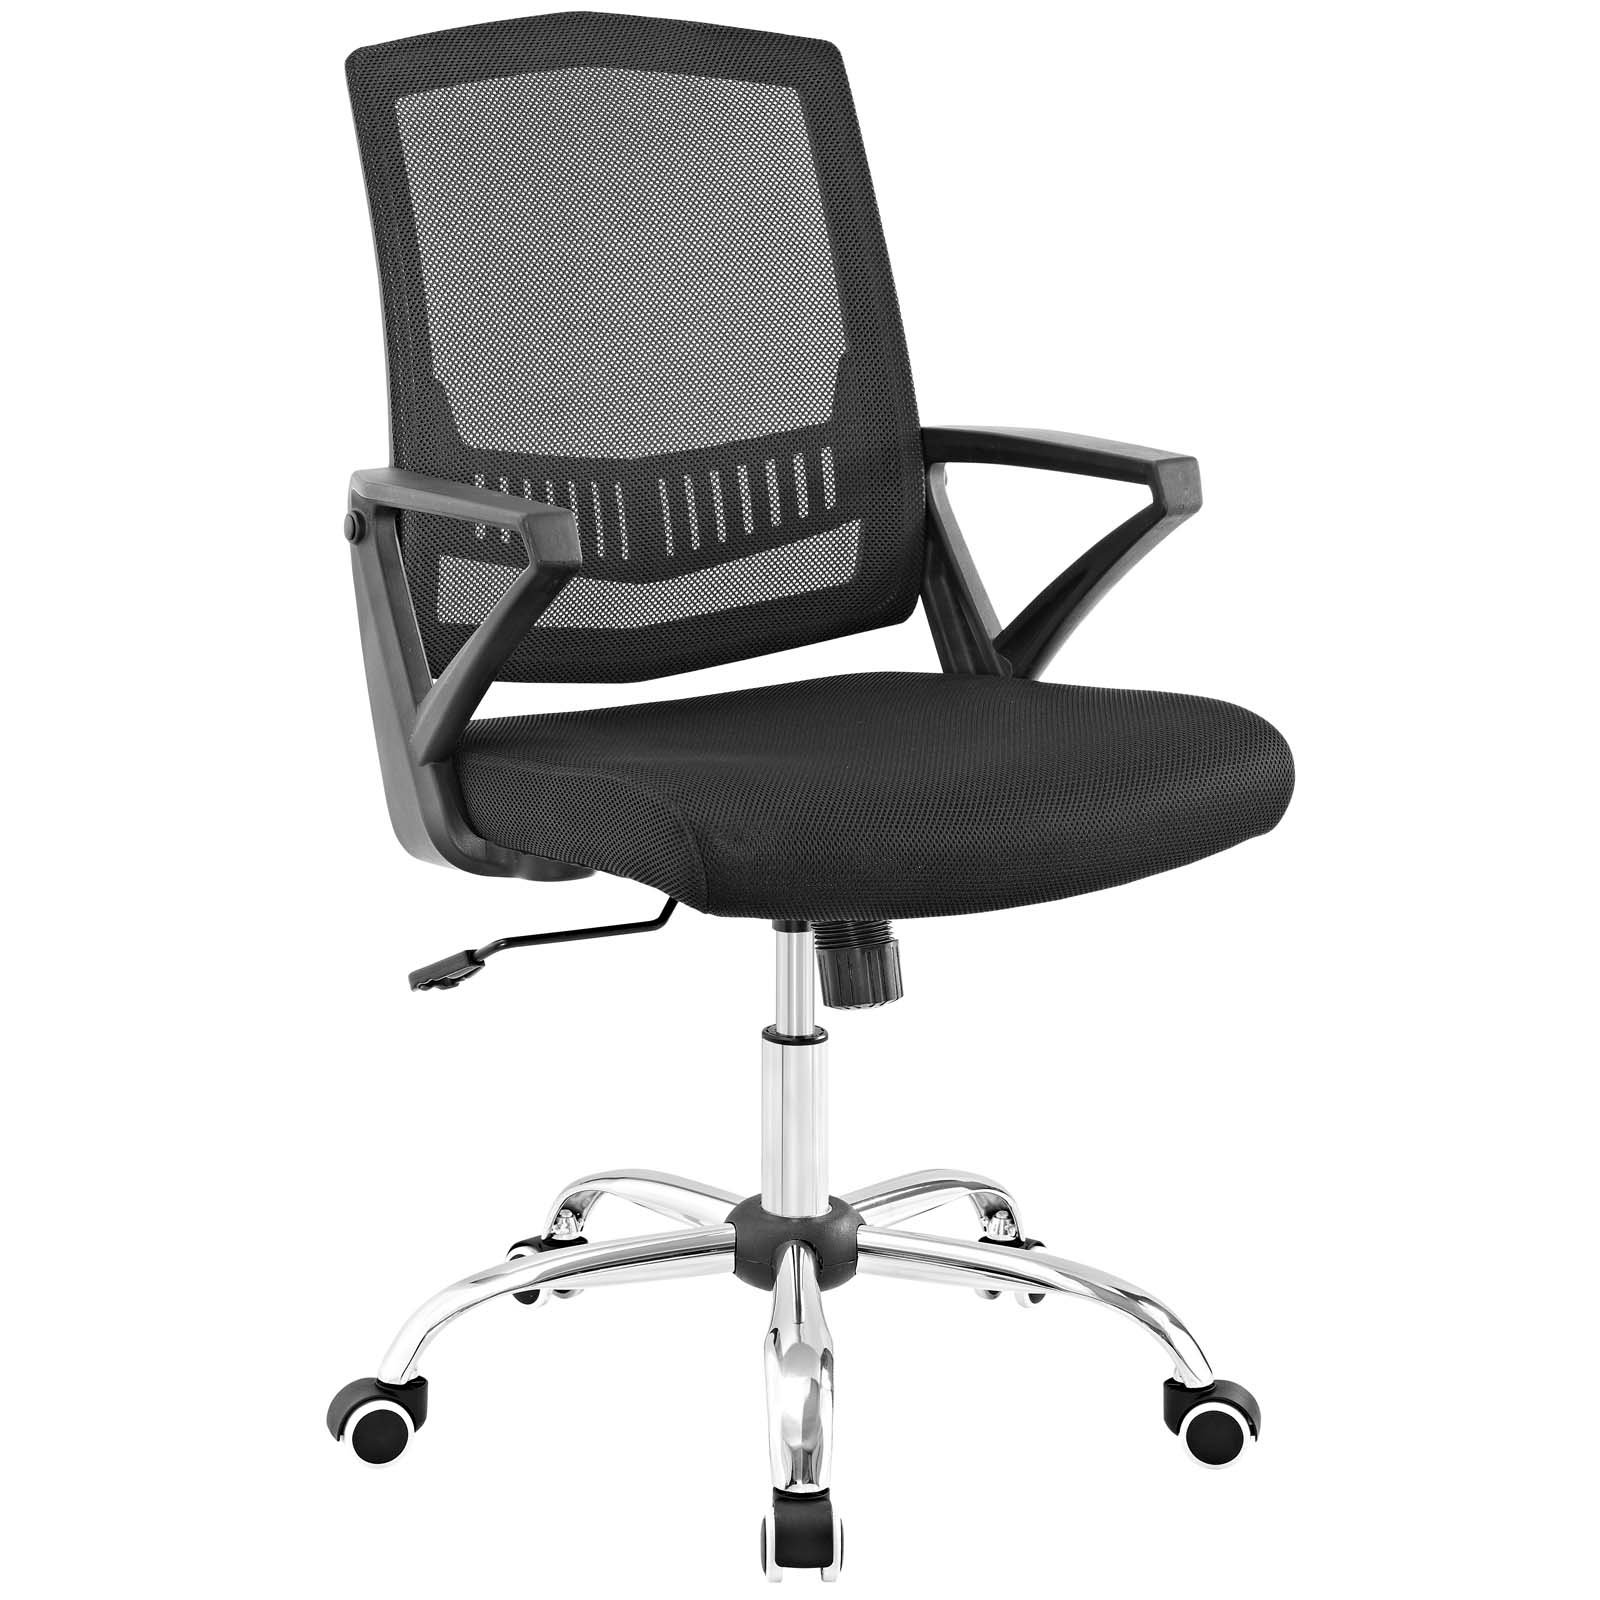 Modway Proceed Mesh Computer Desk Office Chair In Black